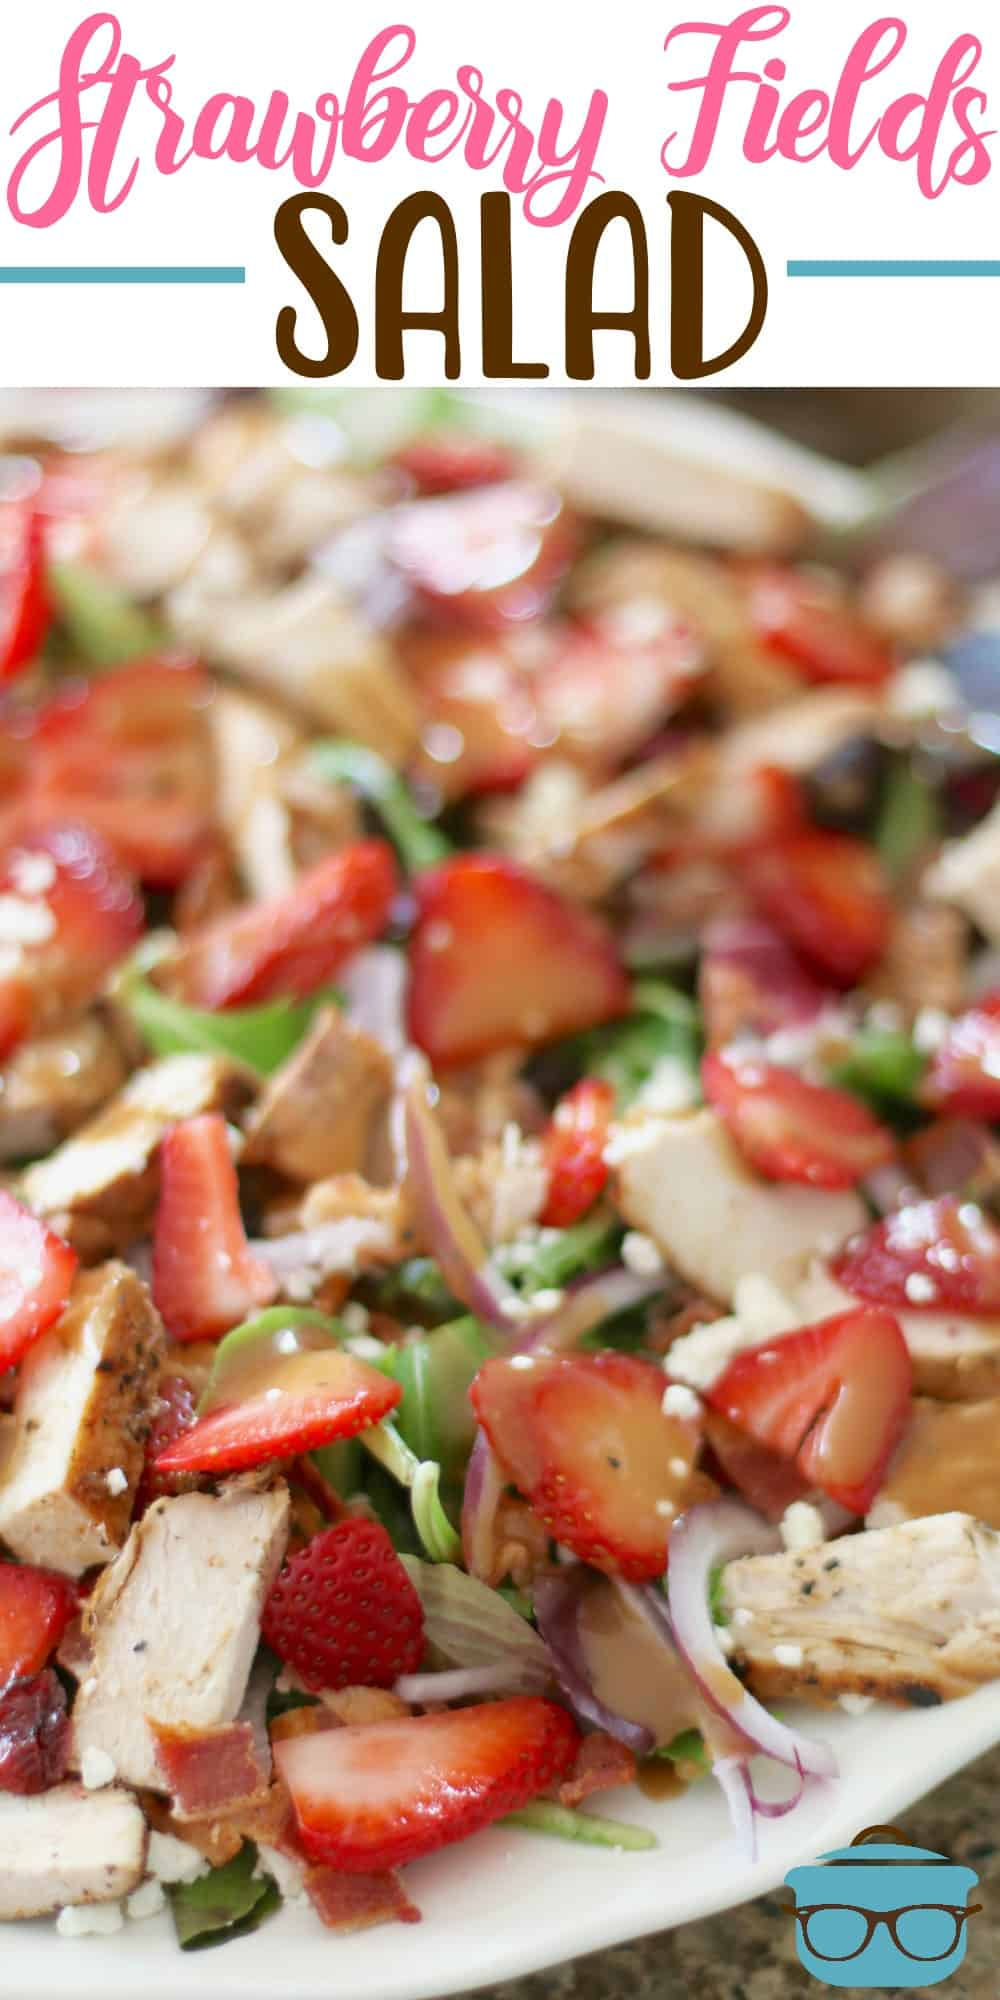 Strawberry Fields Salad recipe is inspired by the one at Wendy's. Full of greens, grilled chicken, strawberries and balsamic dressing. #strawberrysalad #balsamic